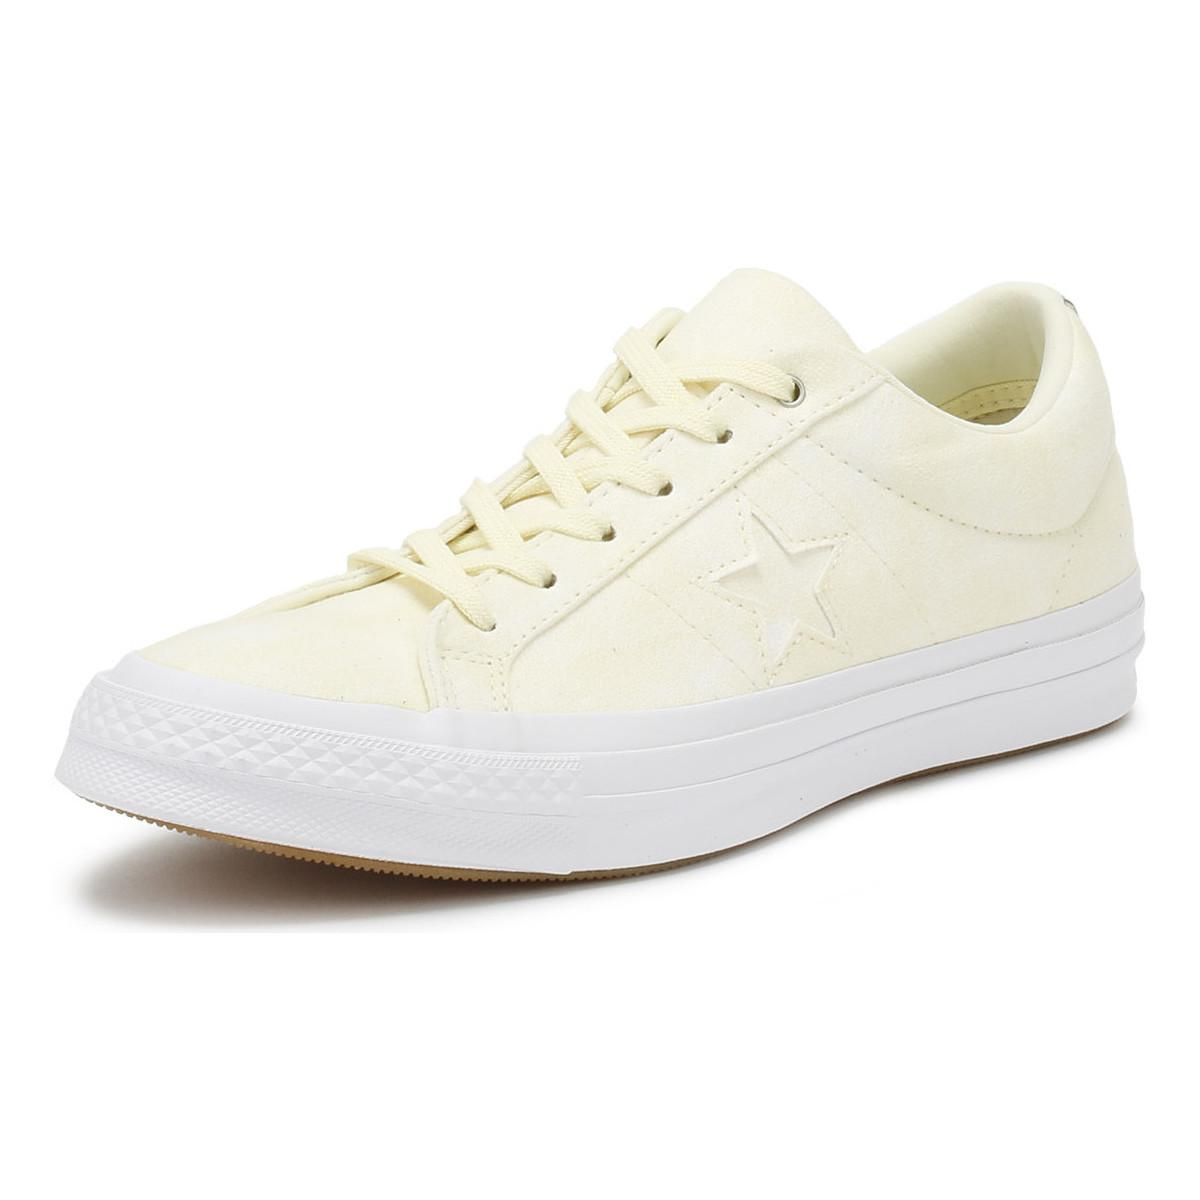 a0680a41983816 Converse - One Star Women s Shoes (trainers) In Yellow - Lyst. View  fullscreen